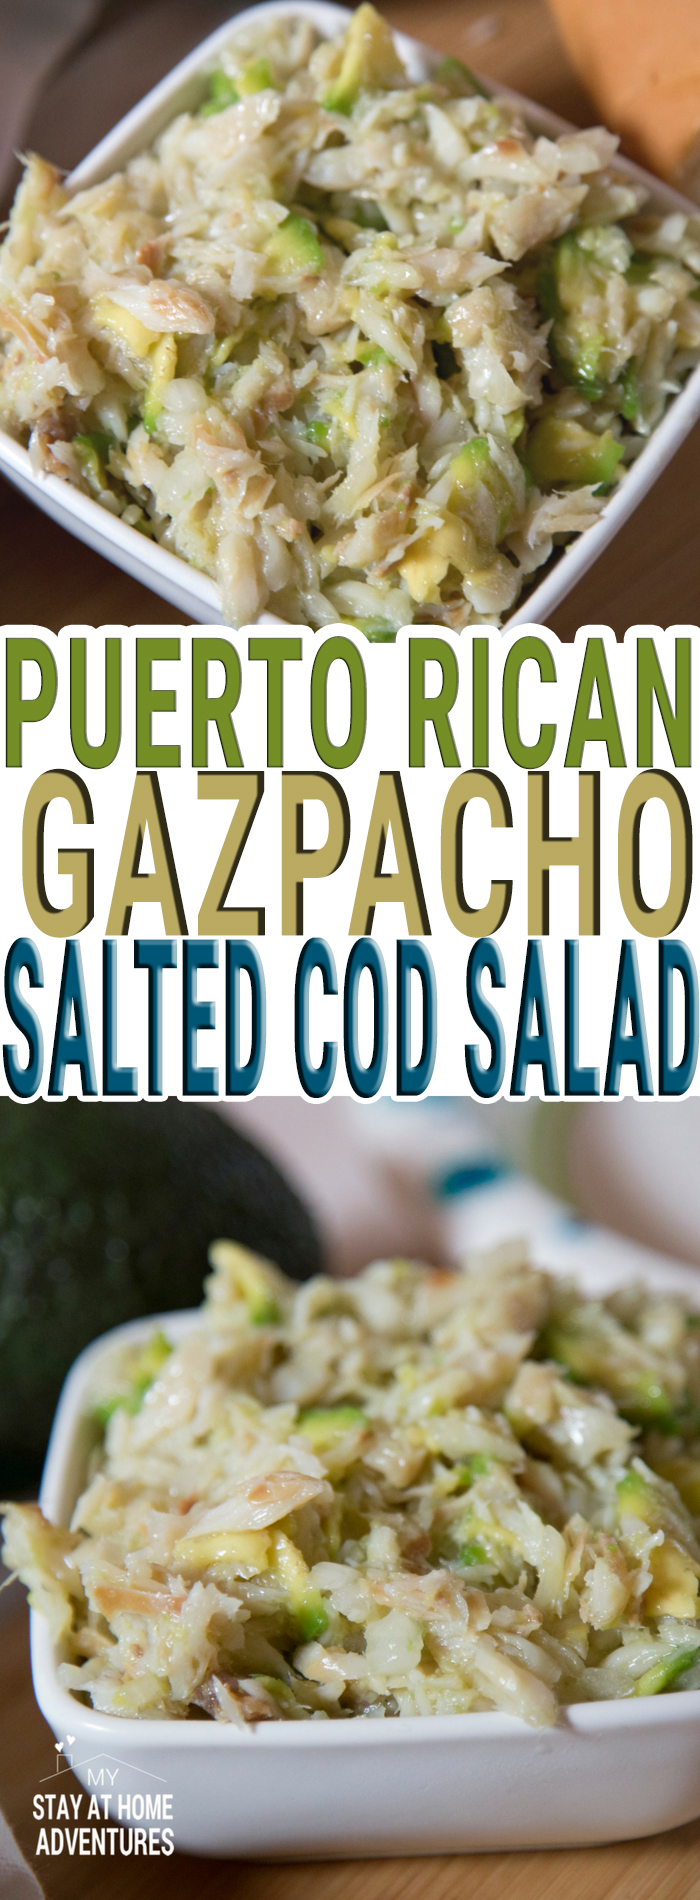 You are going to love this simple, and affordable Puerto Rican Gazpacho or Puerto Rican Cod salad. Simple to make and so delicious your family is going to love it.